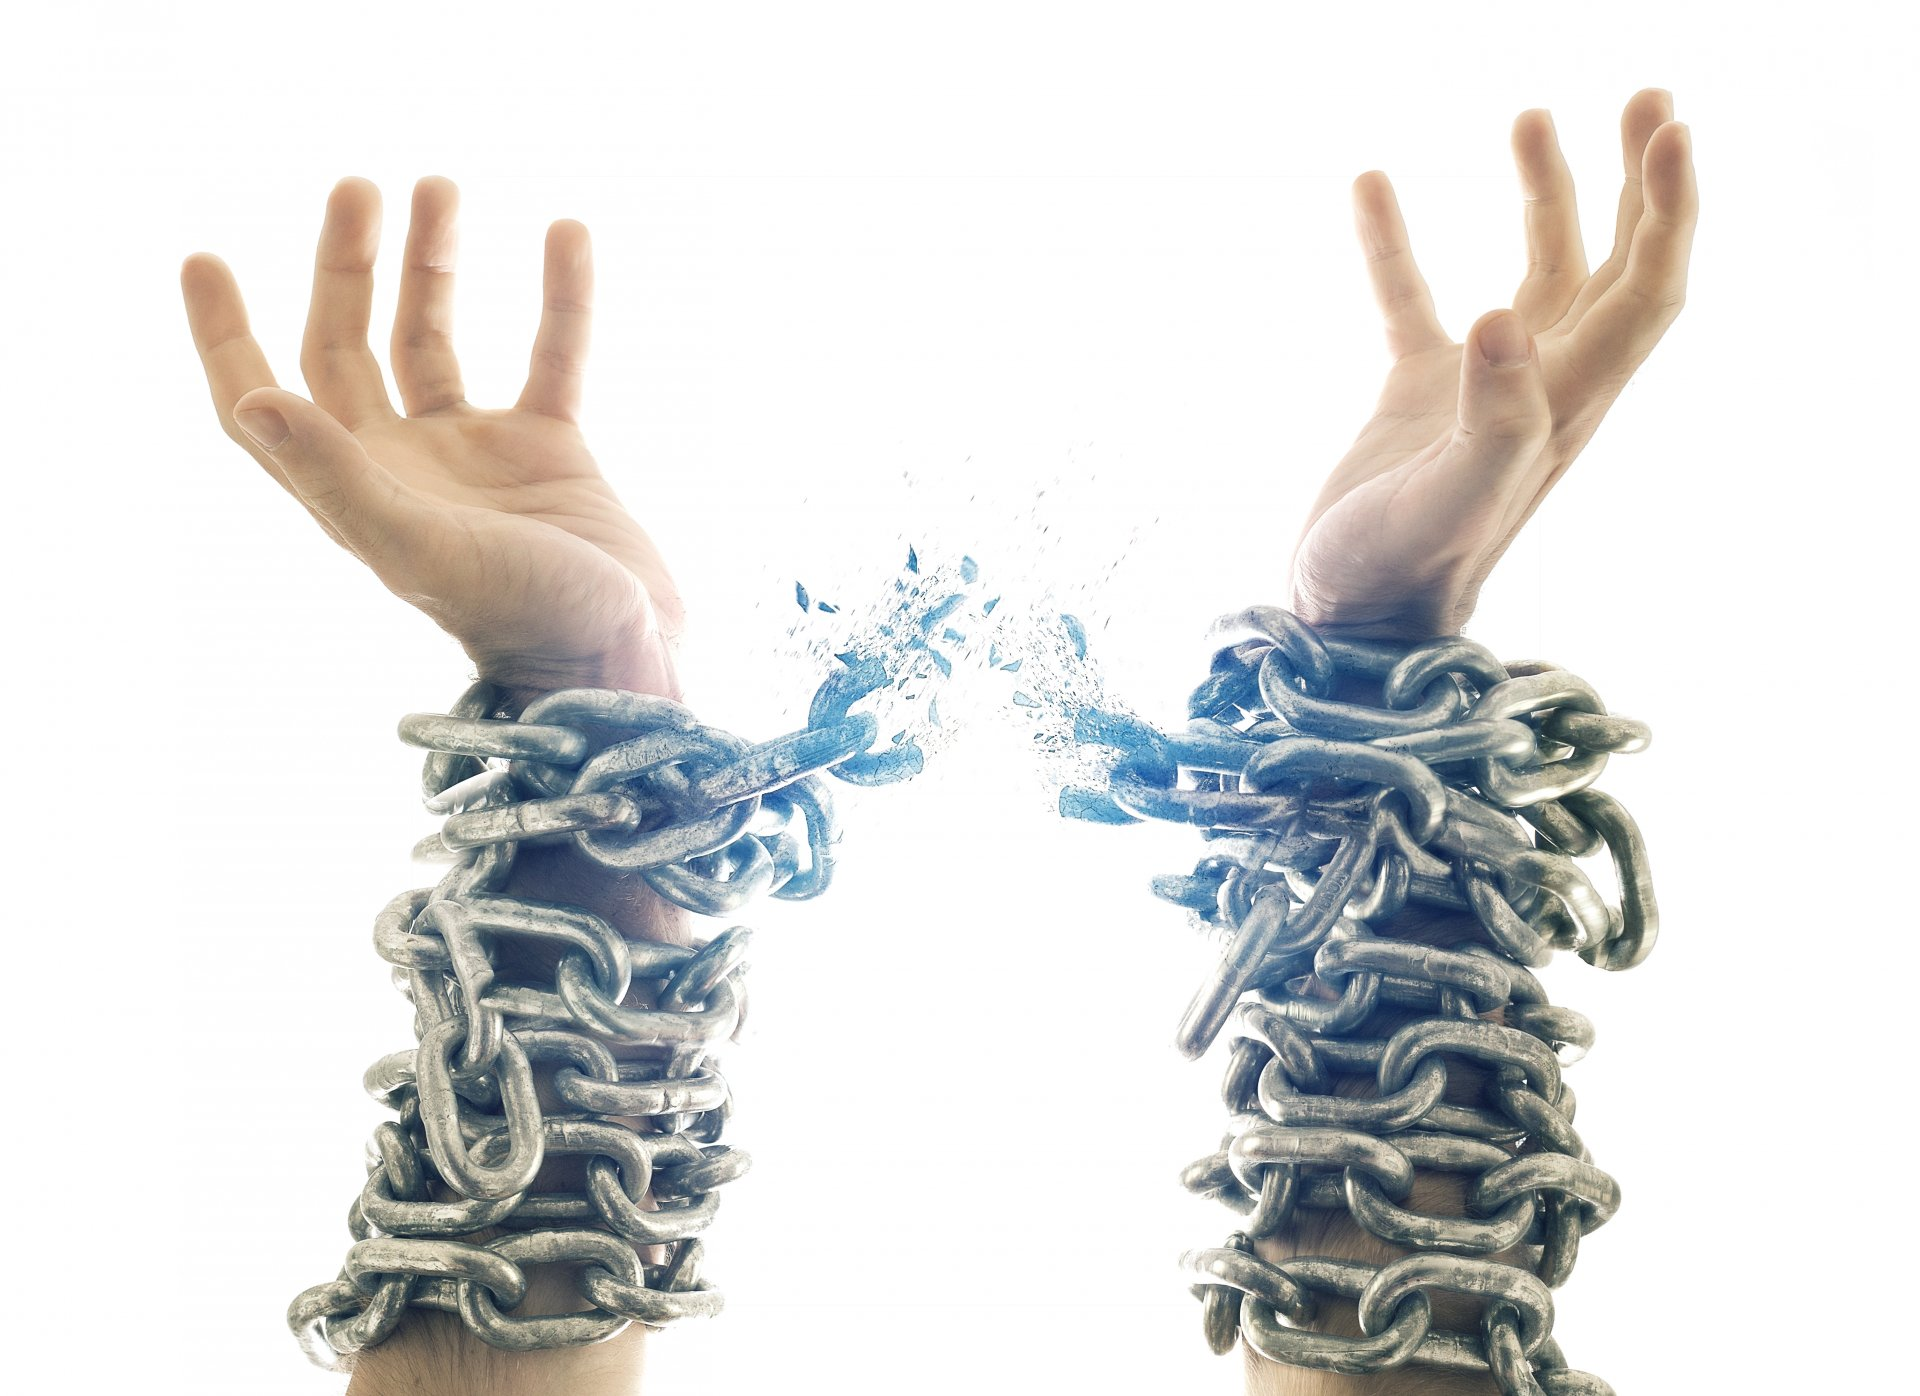 Two hands in chains that are breaking apart. (Courtesy of Adobe Stock by Kevin Carden)